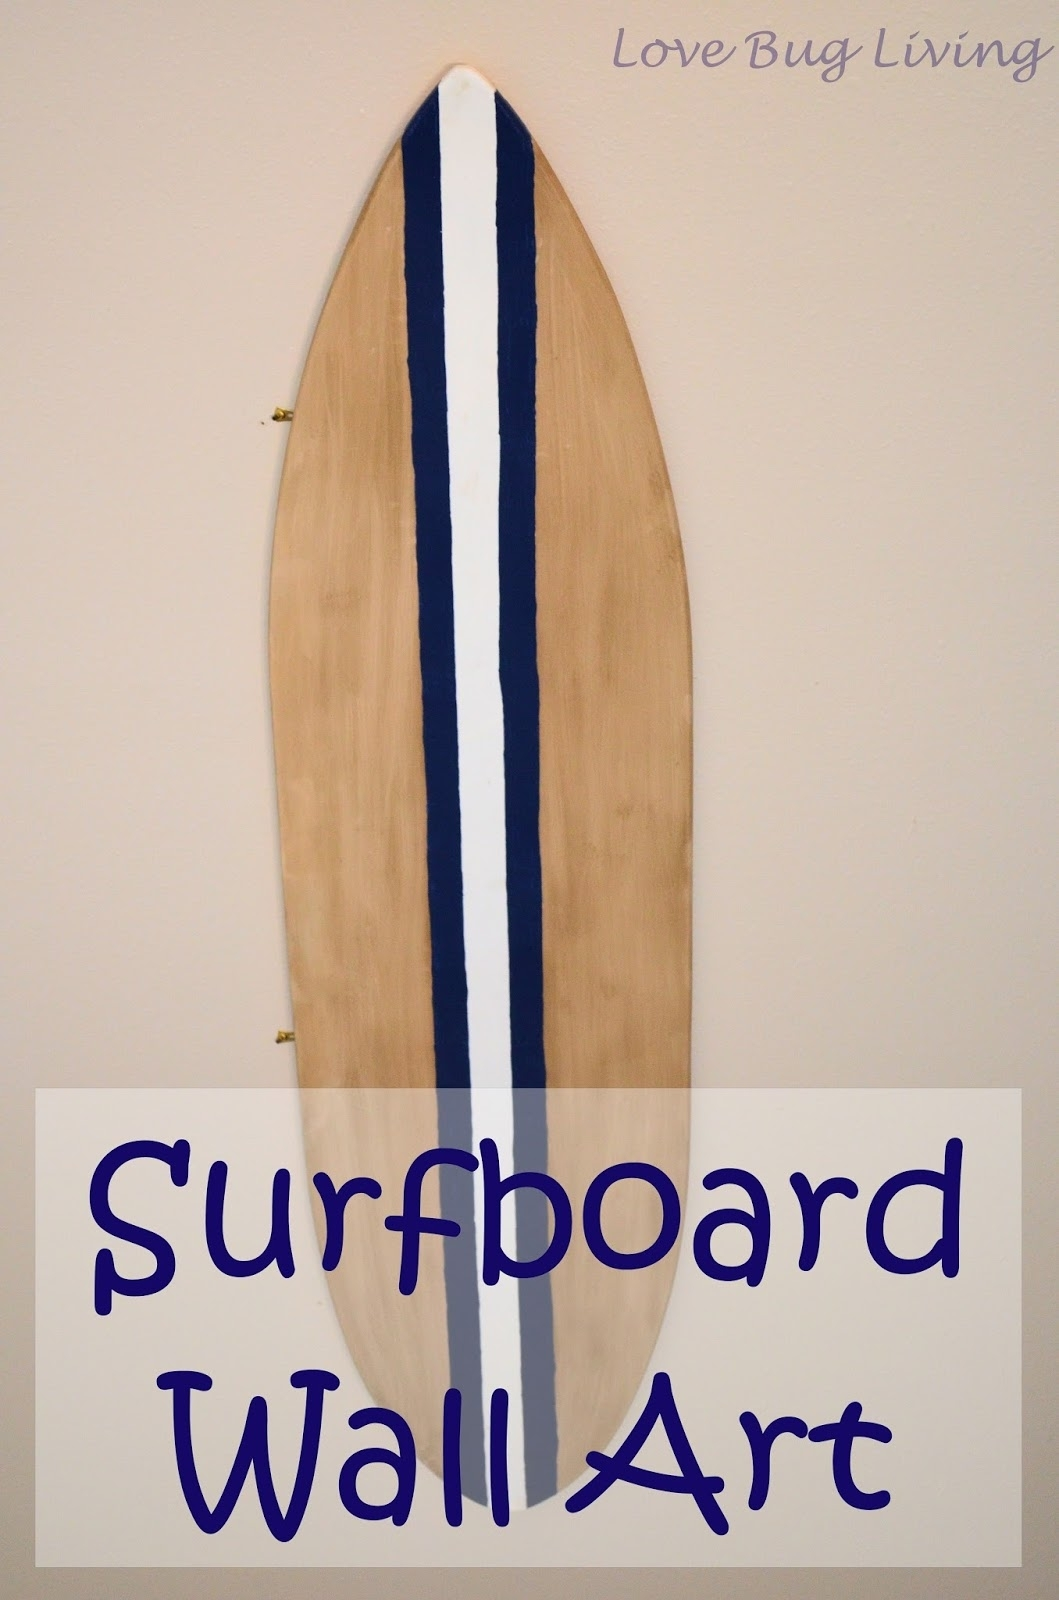 Love Bug Living: Surfboard Wall Art Throughout Most Current Surfboard Wall Art (View 9 of 20)